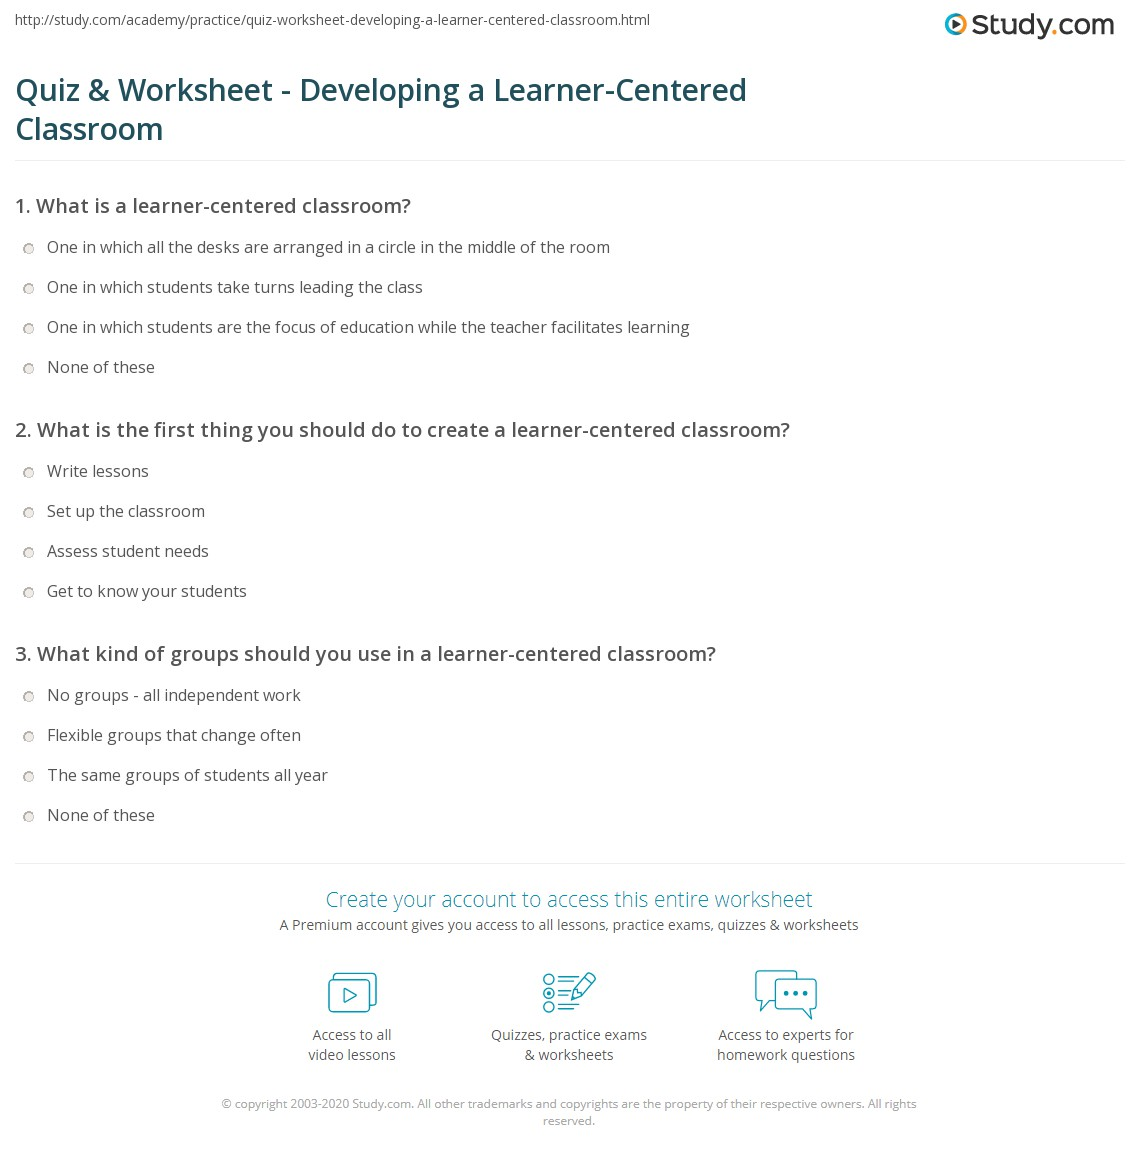 photograph about What Type of Learner Are You Printable Quiz named Quiz Worksheet - Building a Learner-Primarily based Clroom